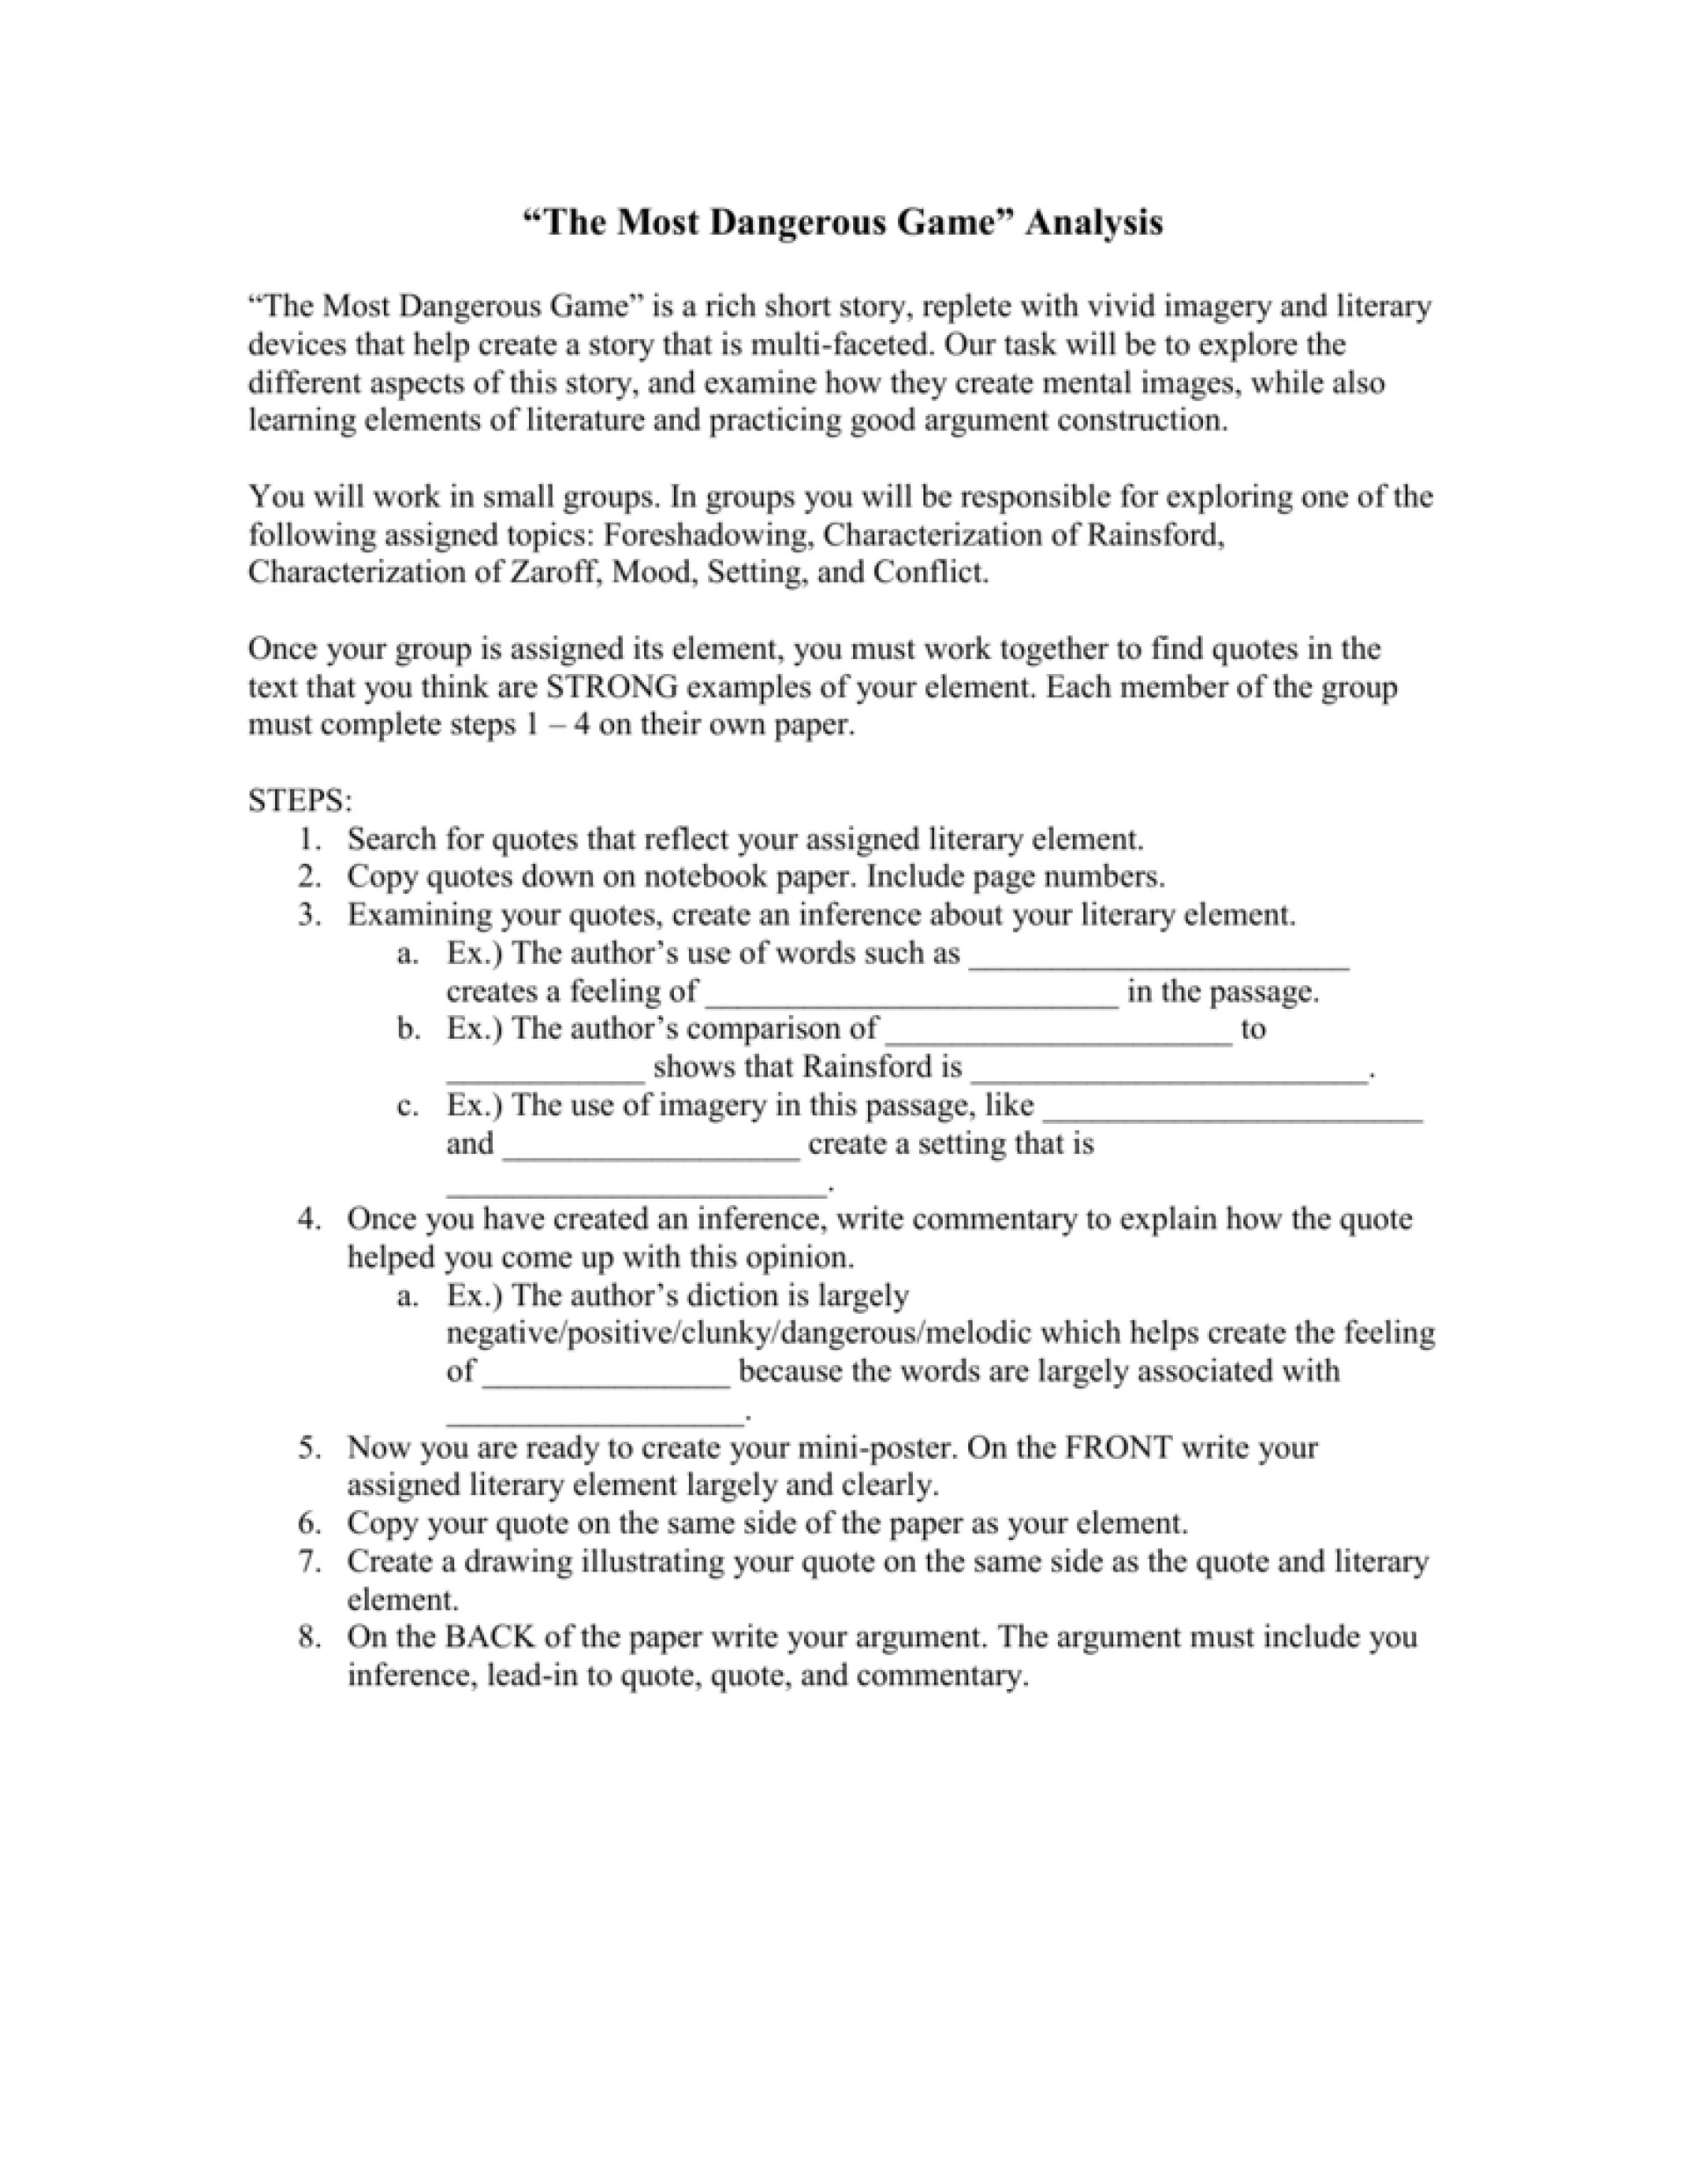 009 Essay Example 008016662 1 The Most Dangerous Impressive Game Study Questions And Answers Discussion 1920